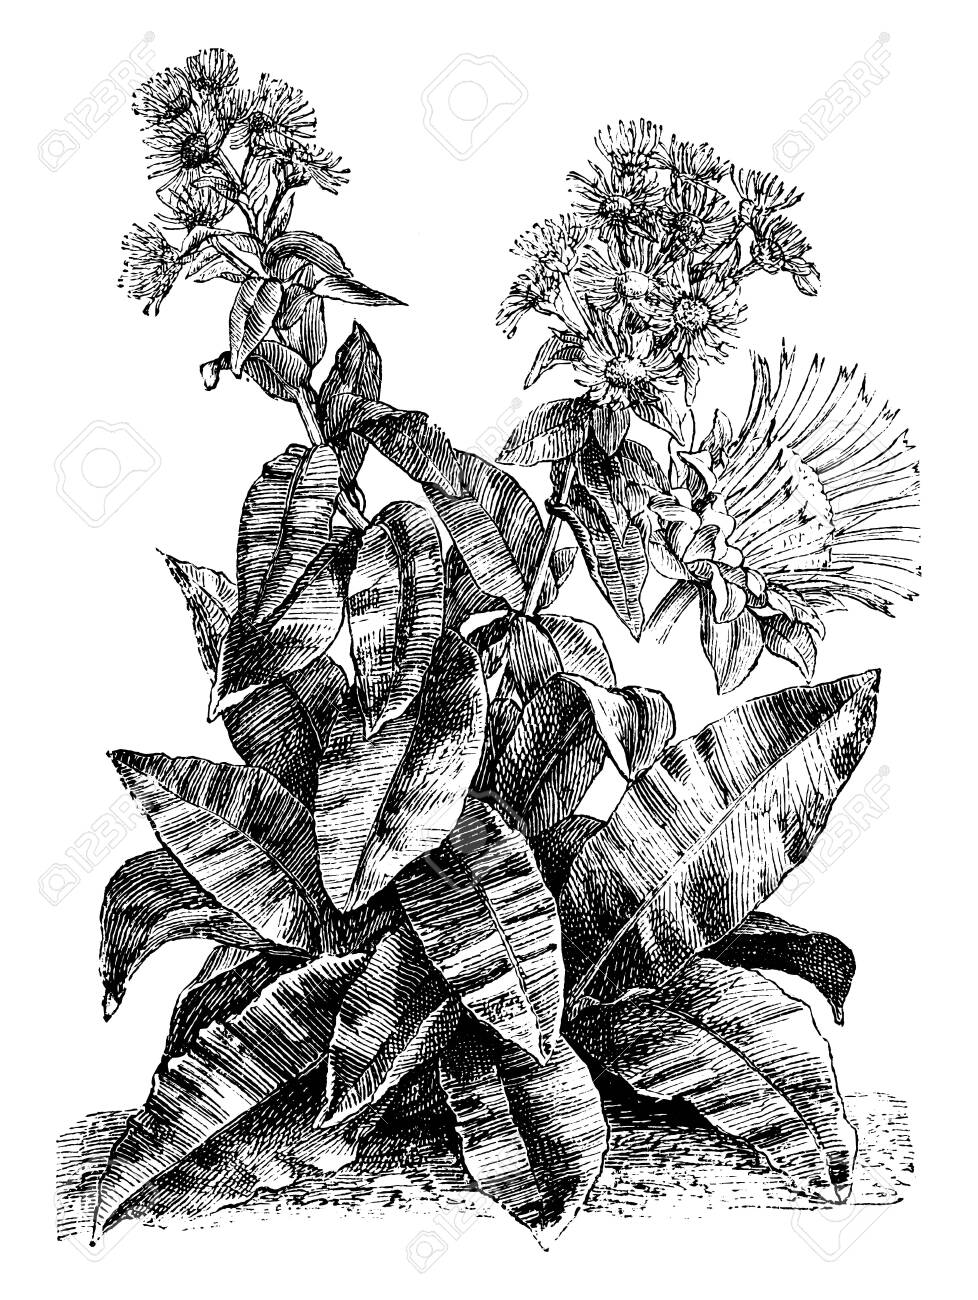 A plant of the American genus Helenium, up to 1.6 m (5 ft) tall, some species of which are grown as border plants for their daisy-like yellow or multicolored flowers, vintage line drawing or engraving illustration. - 132872689